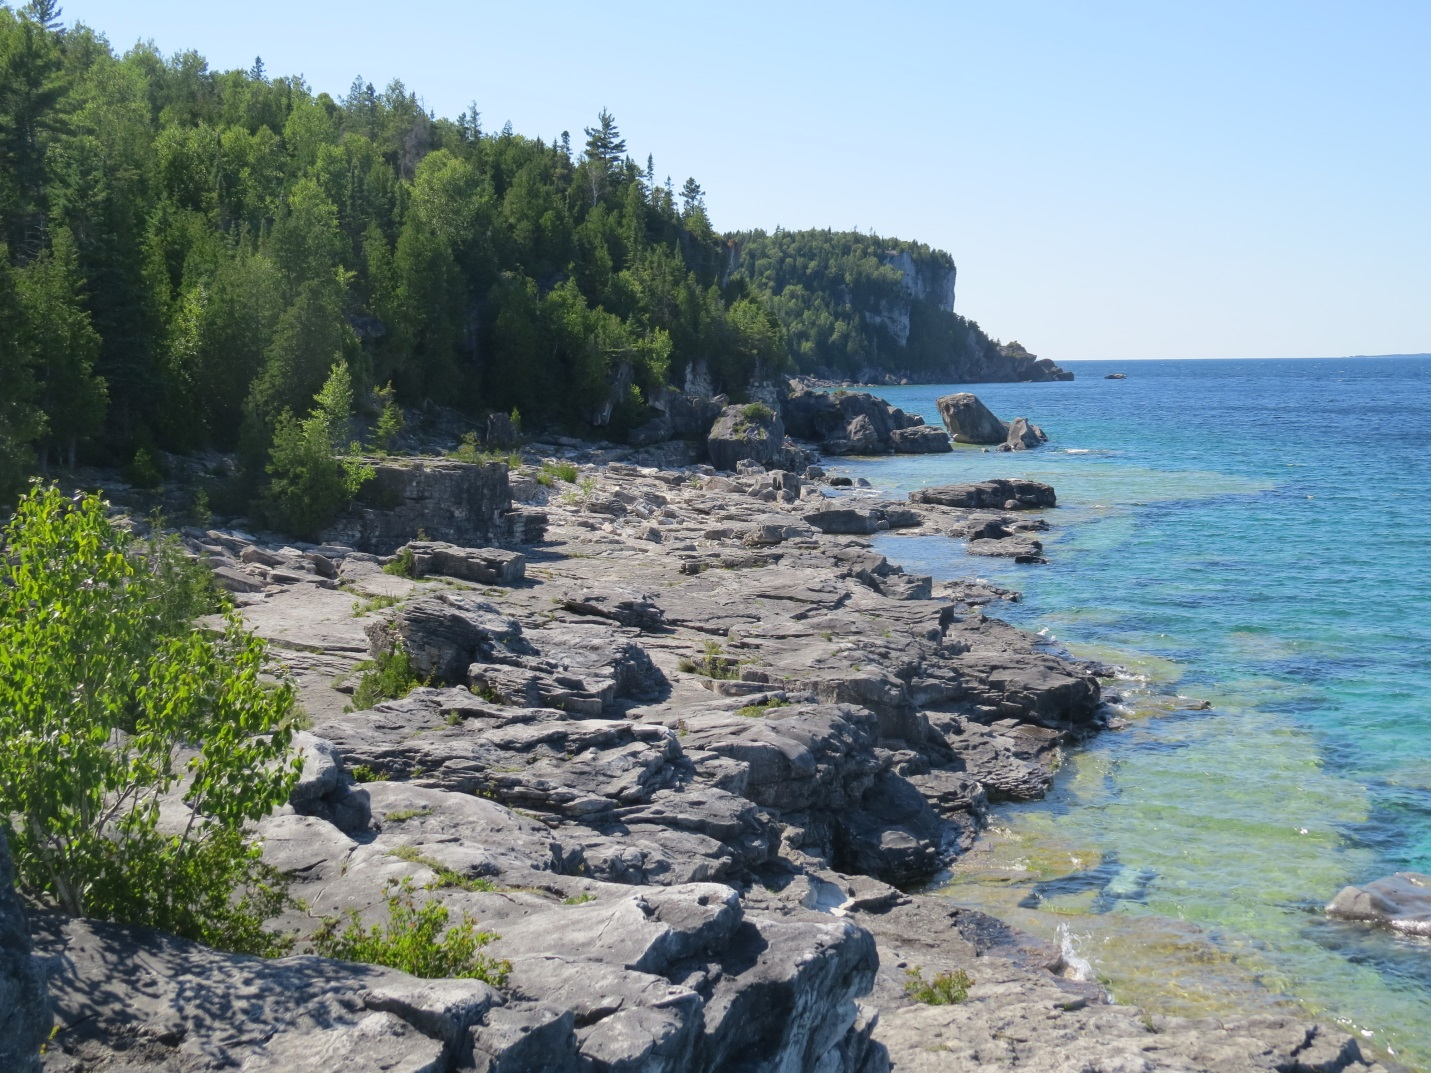 Another photo of the shoreline along Little Cove. The dolomite rock dominates the shoreline and the large cliffs are visible in the background.